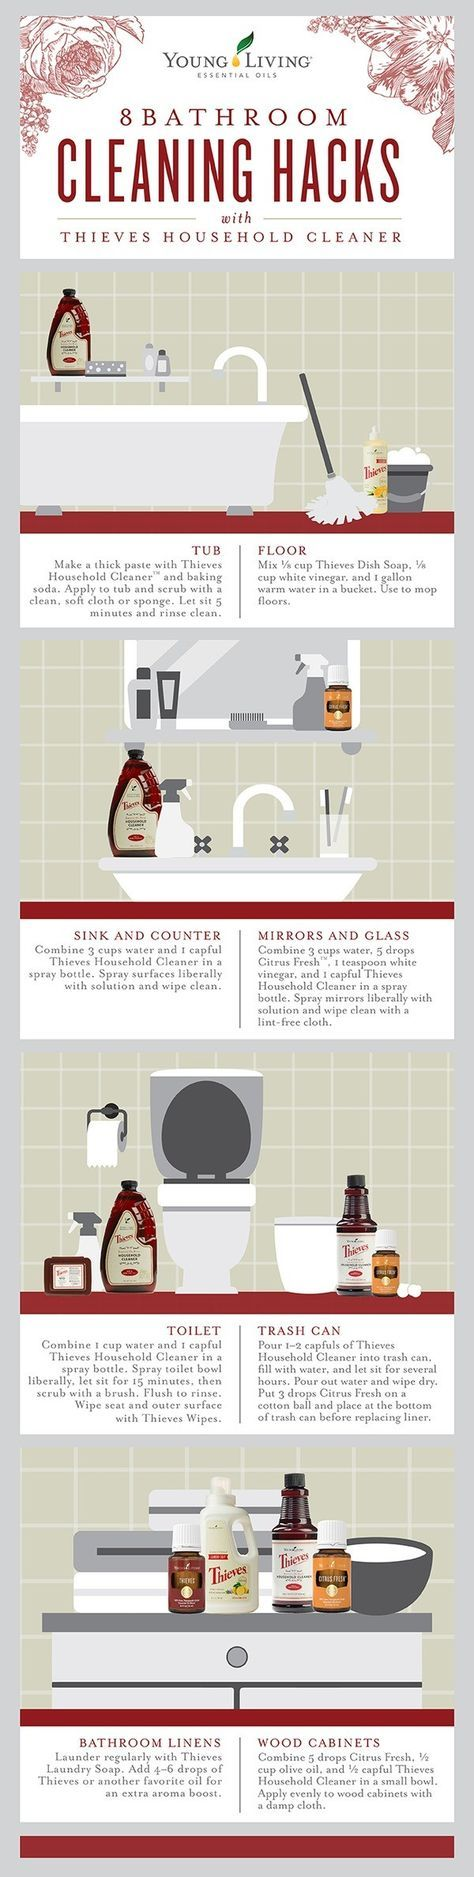 8 Bathroom Cleaning Hacks with Thieves Household Cleaner...